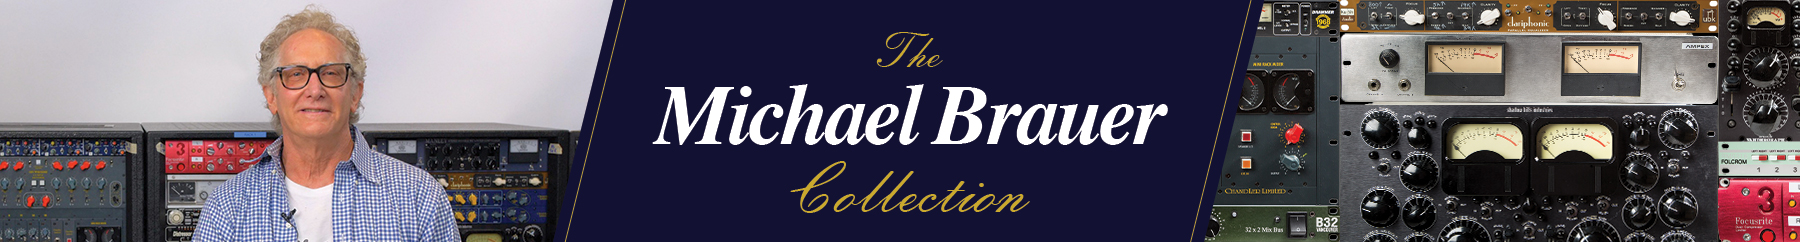 The Michael Brauer Collection